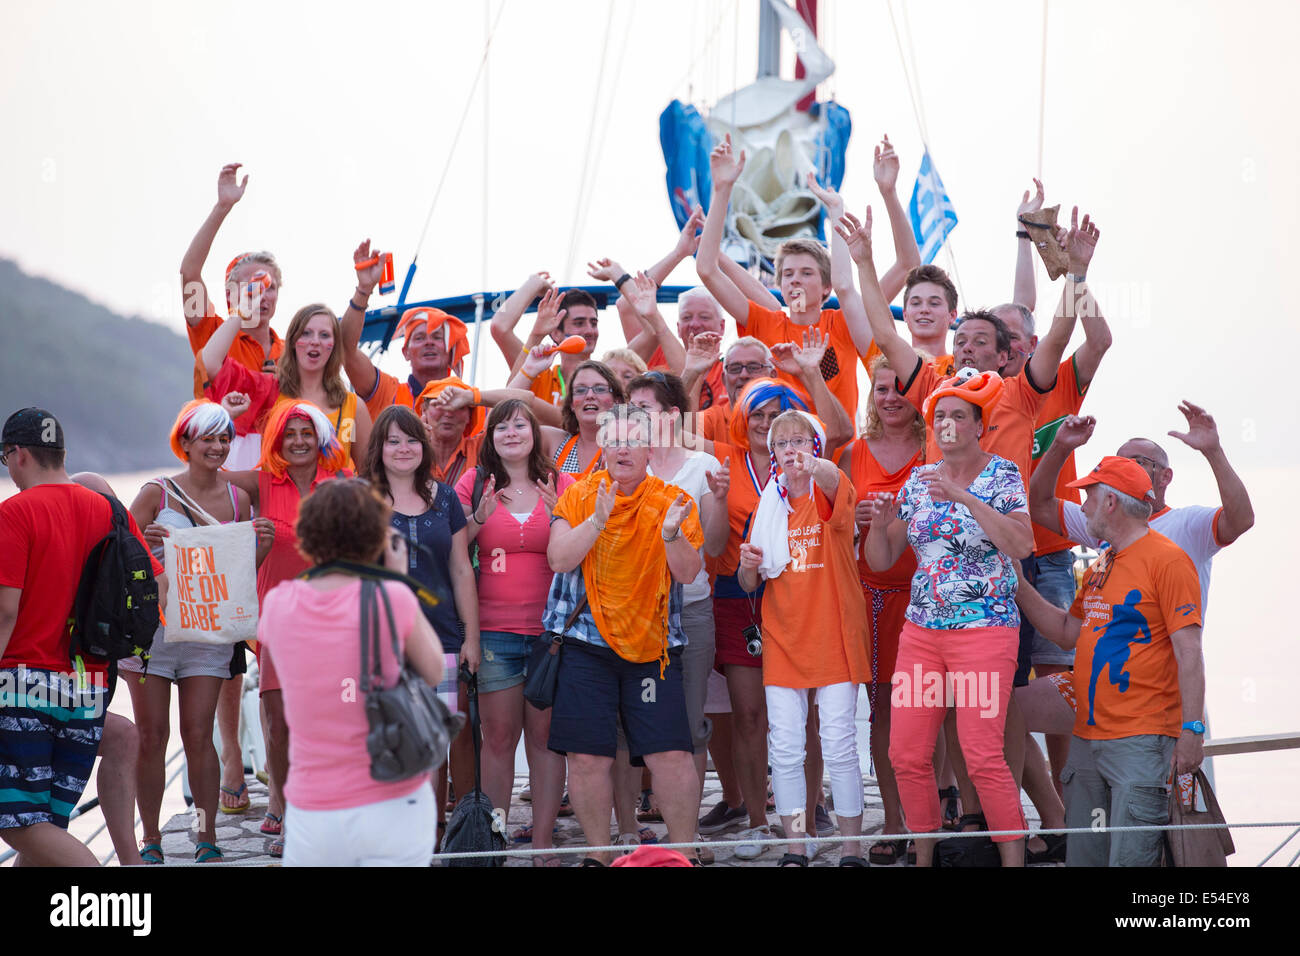 Dutch football fans celebrating a Dutch win in the world cup. - Stock Image